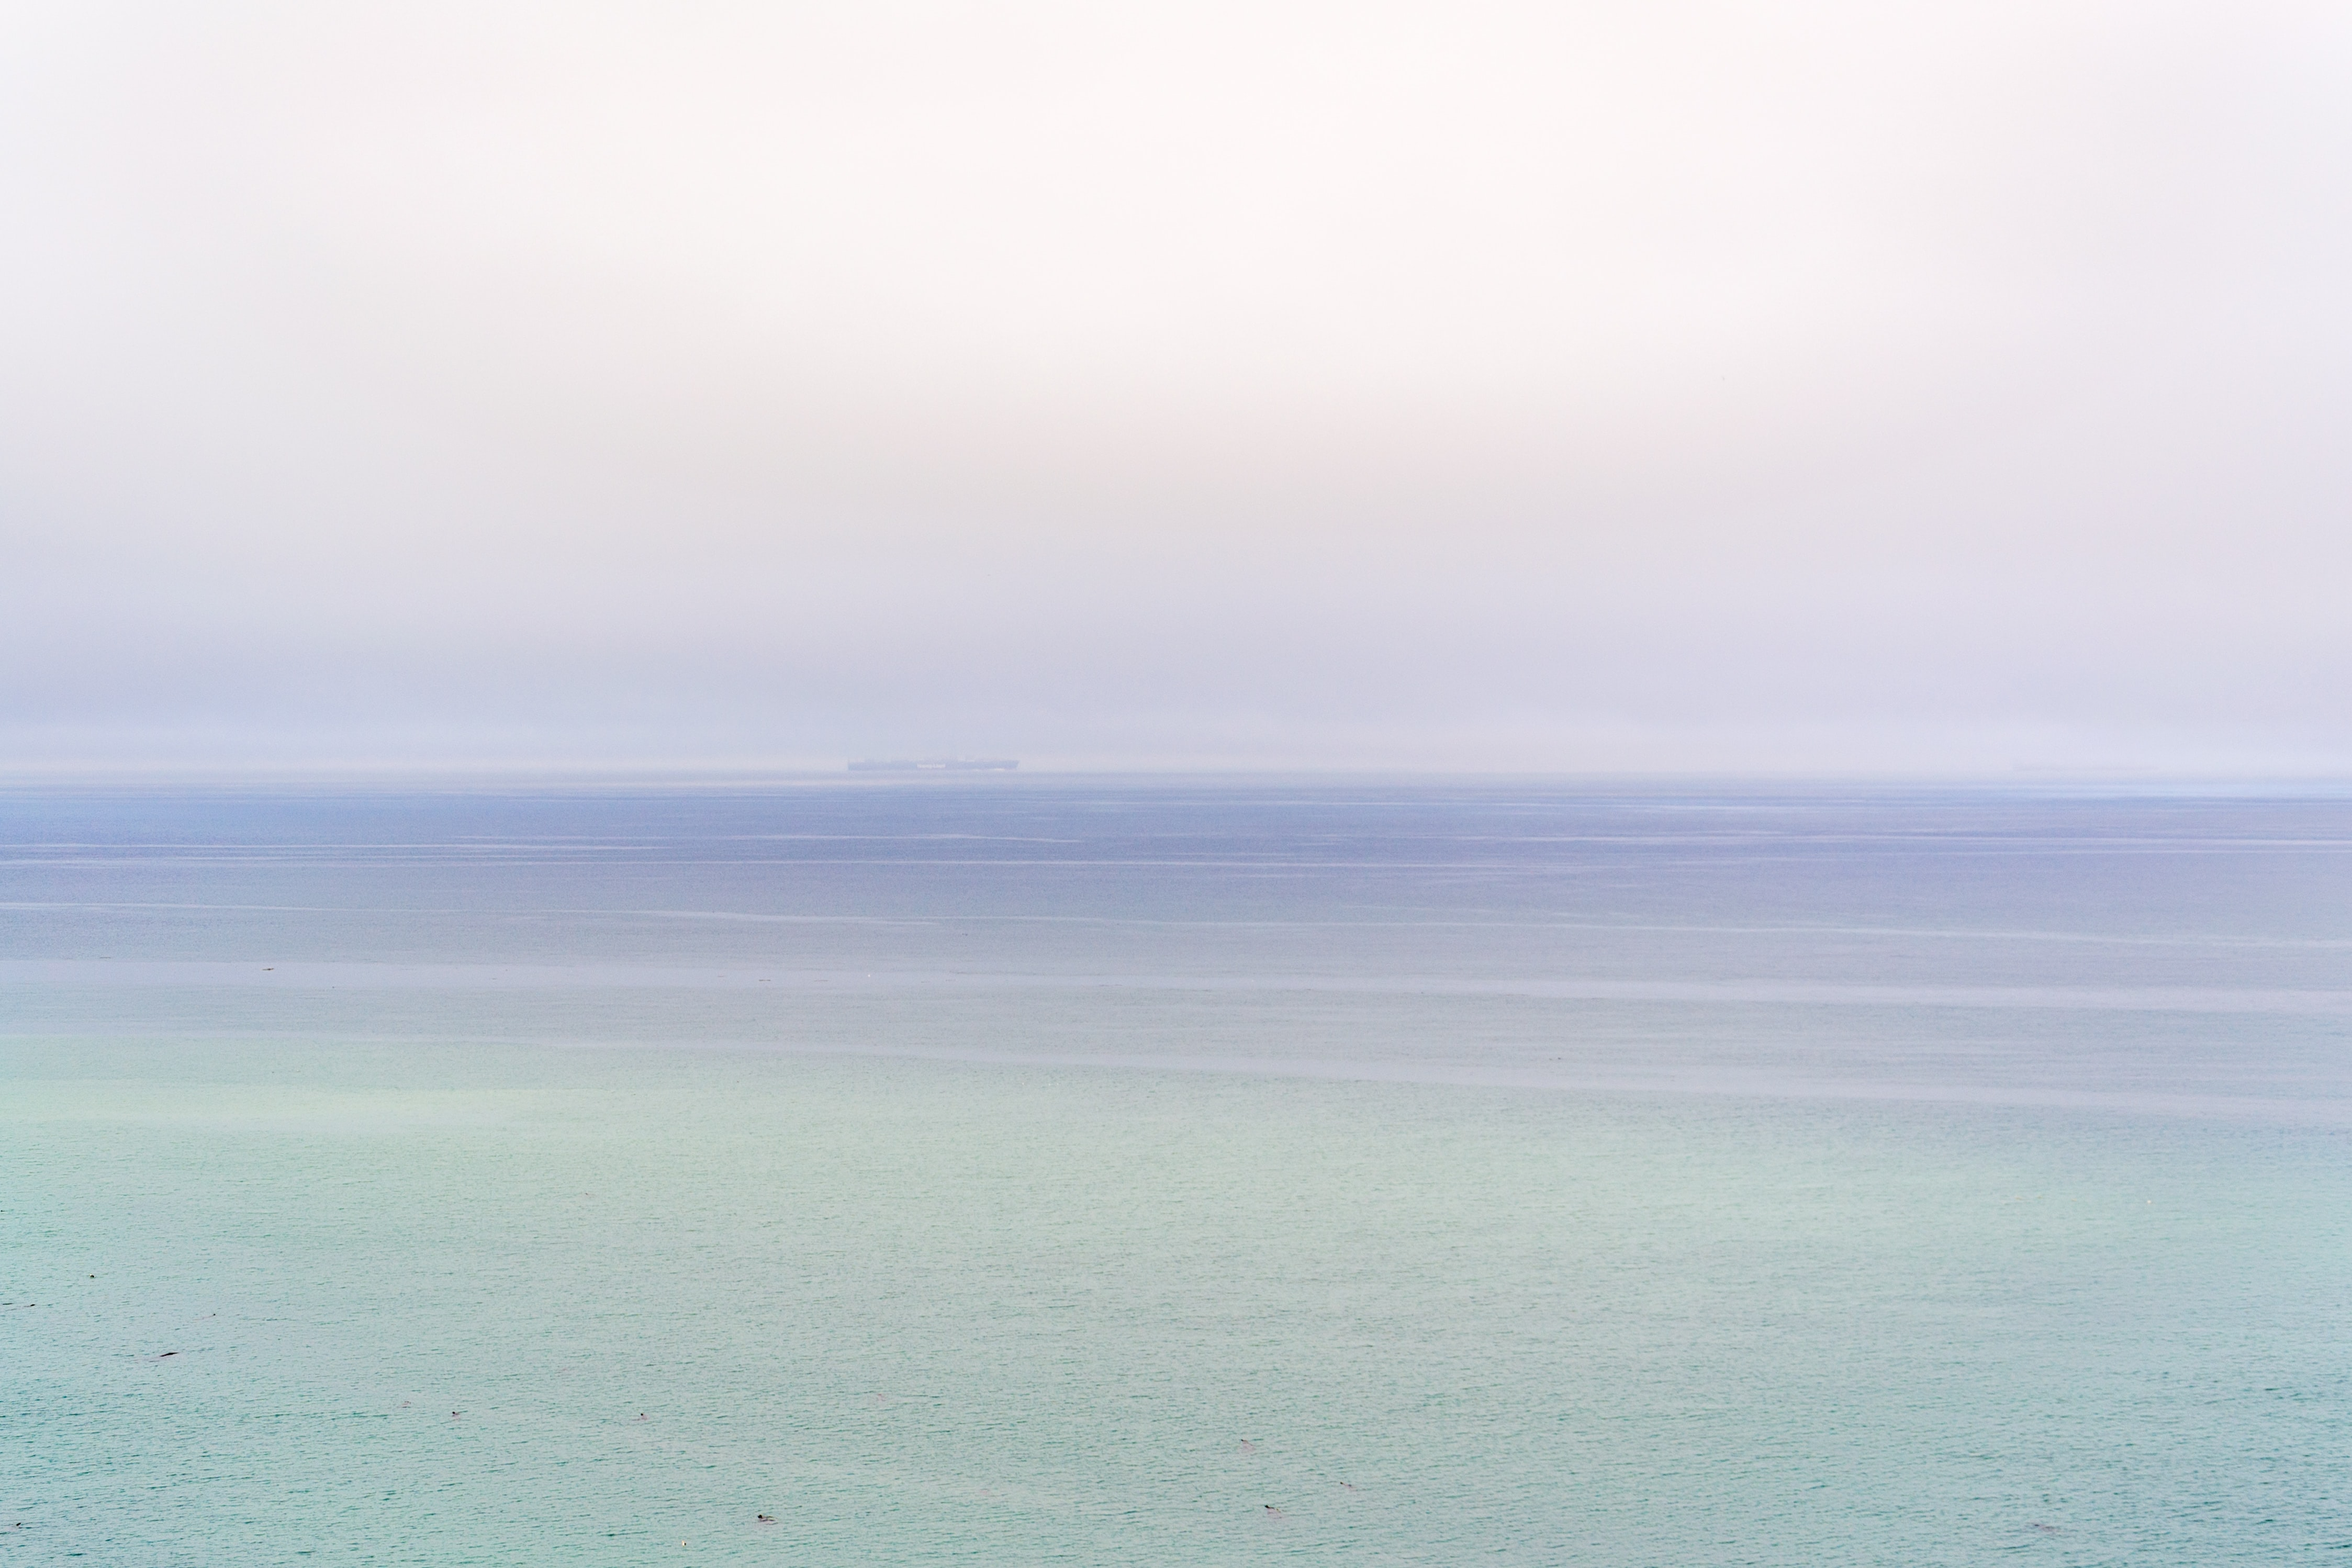 Tranquil color gradient of the sea, sky, and horizon